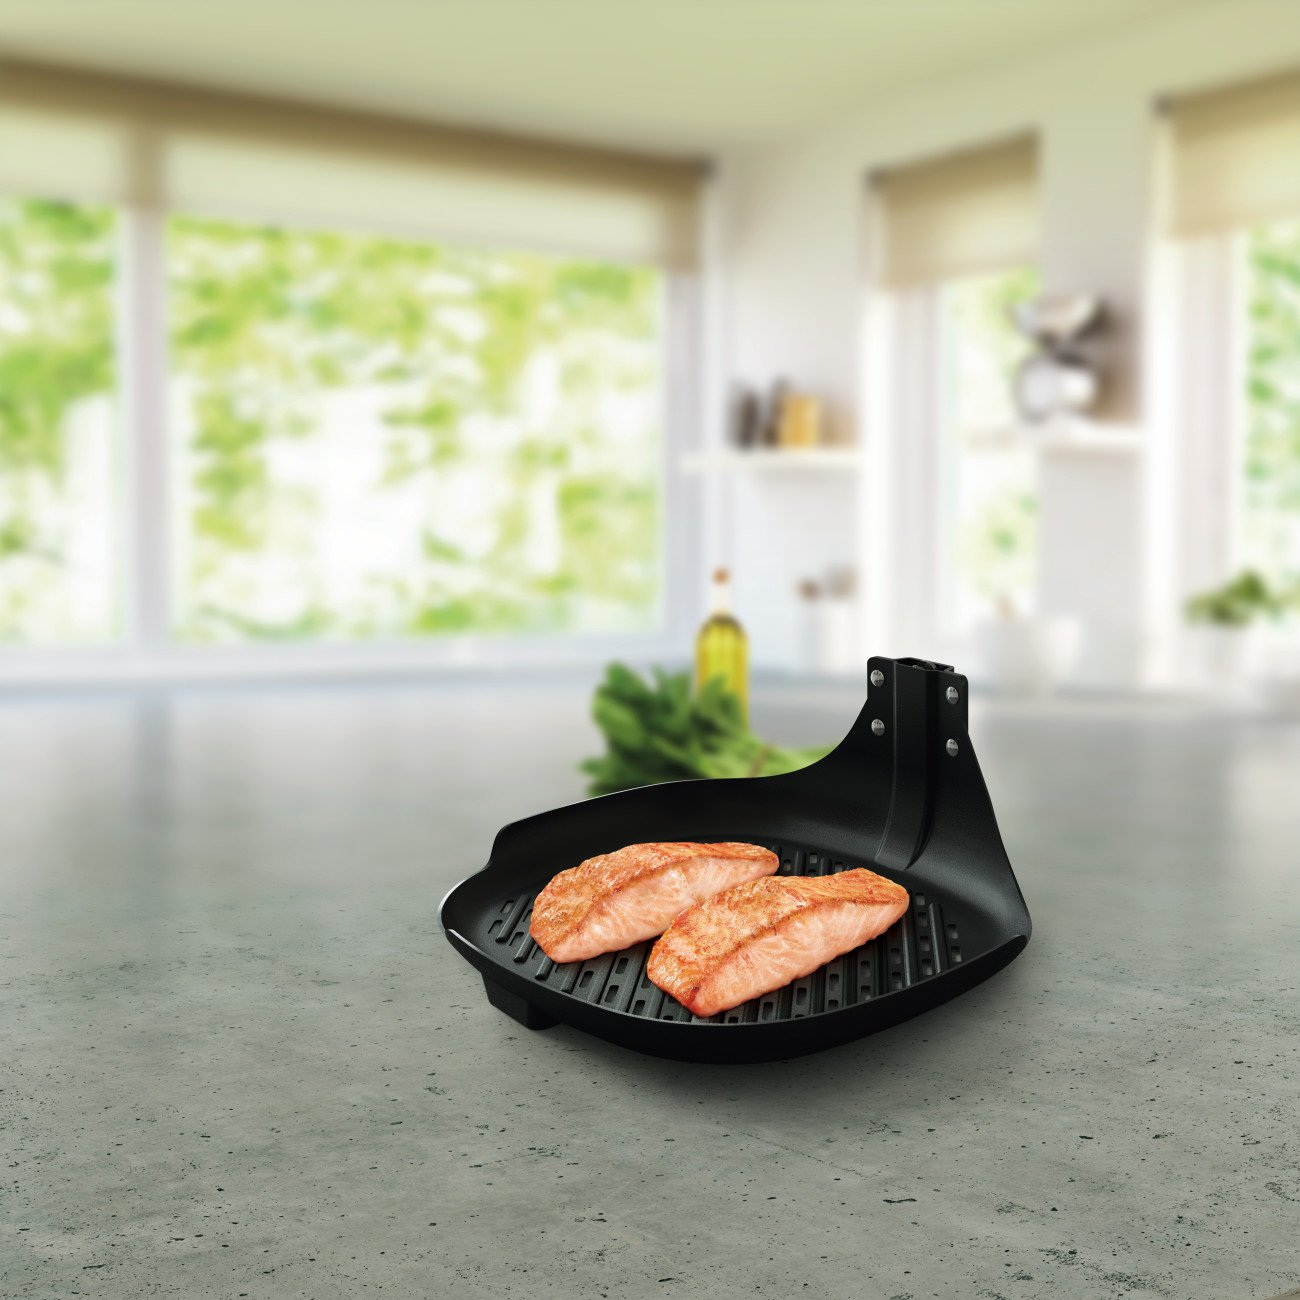 Philips HD9940/00  Airfryer Non-Stick Grill Pan Accessory for TurboStar model Airfryers by Philips (Image #2)